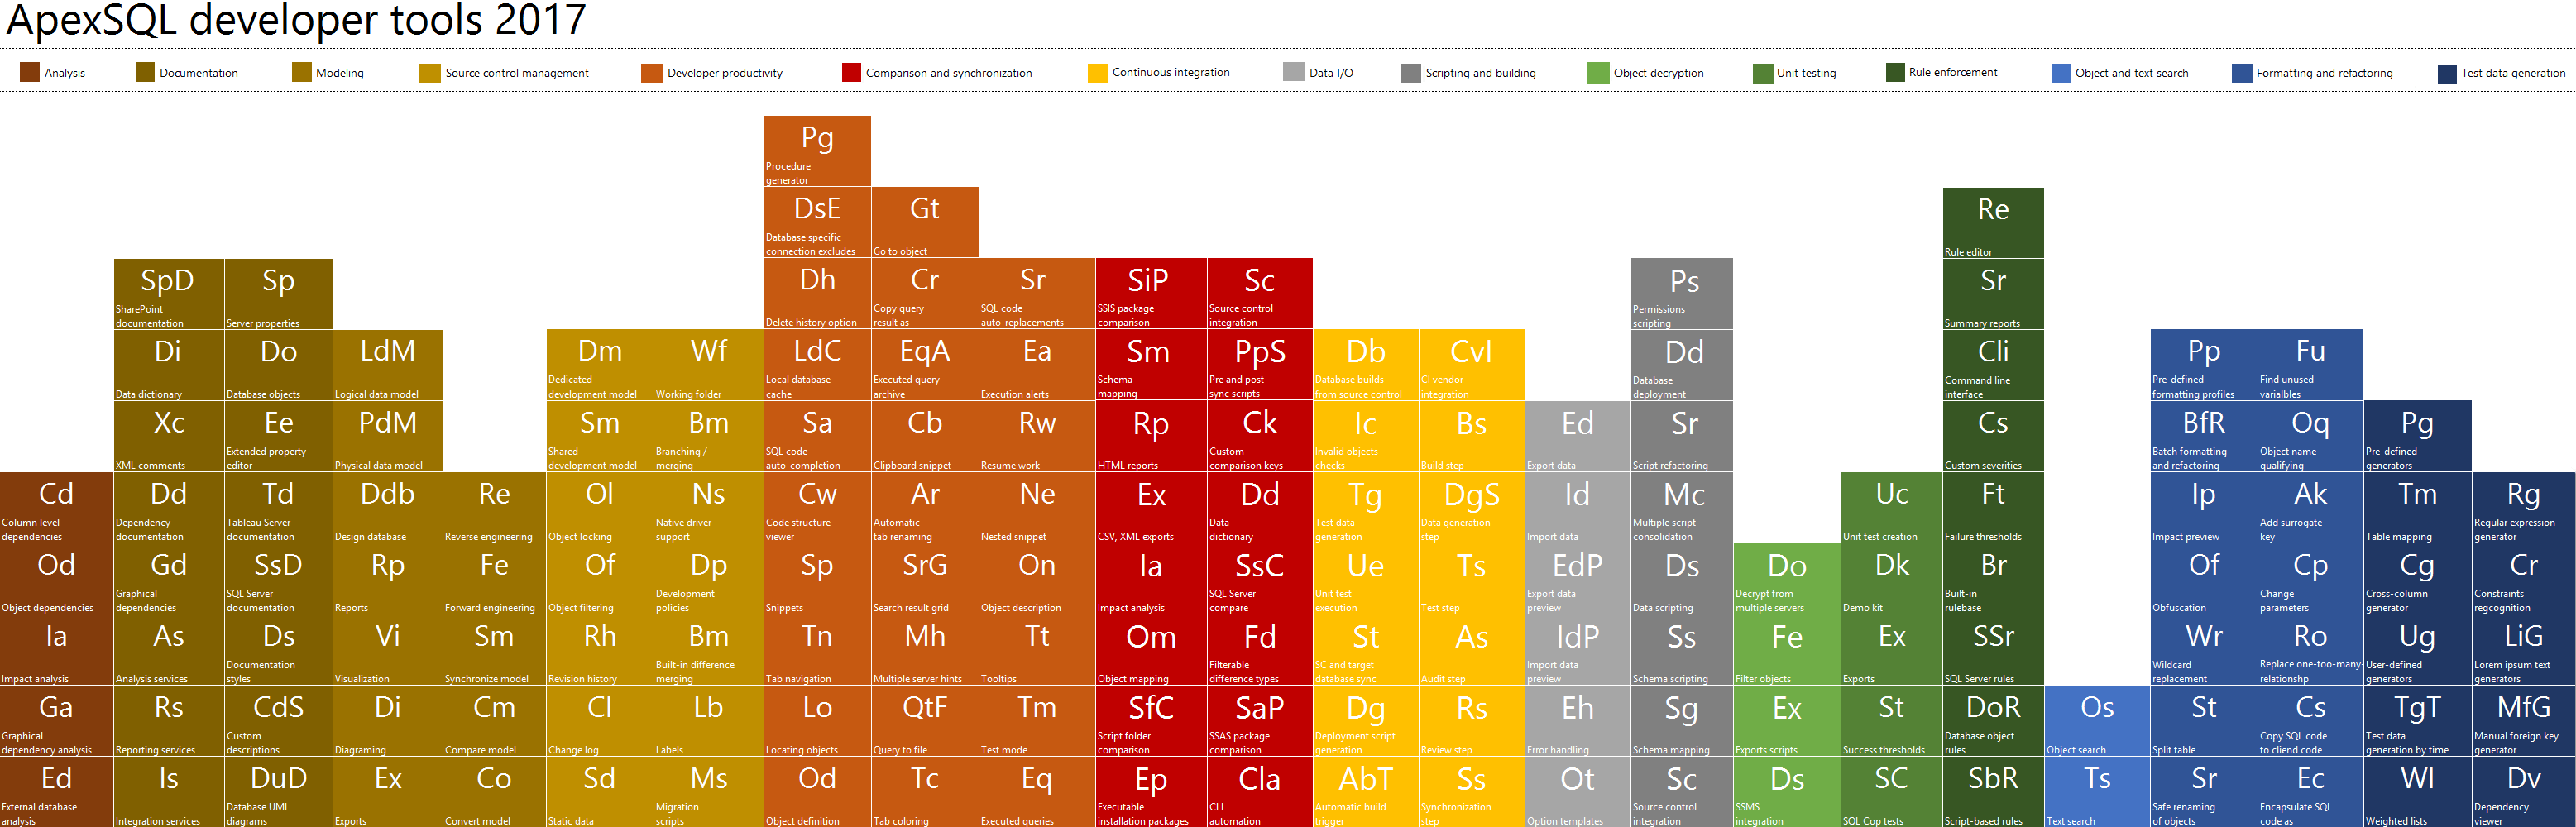 ApexSQL Developer features - periodic table